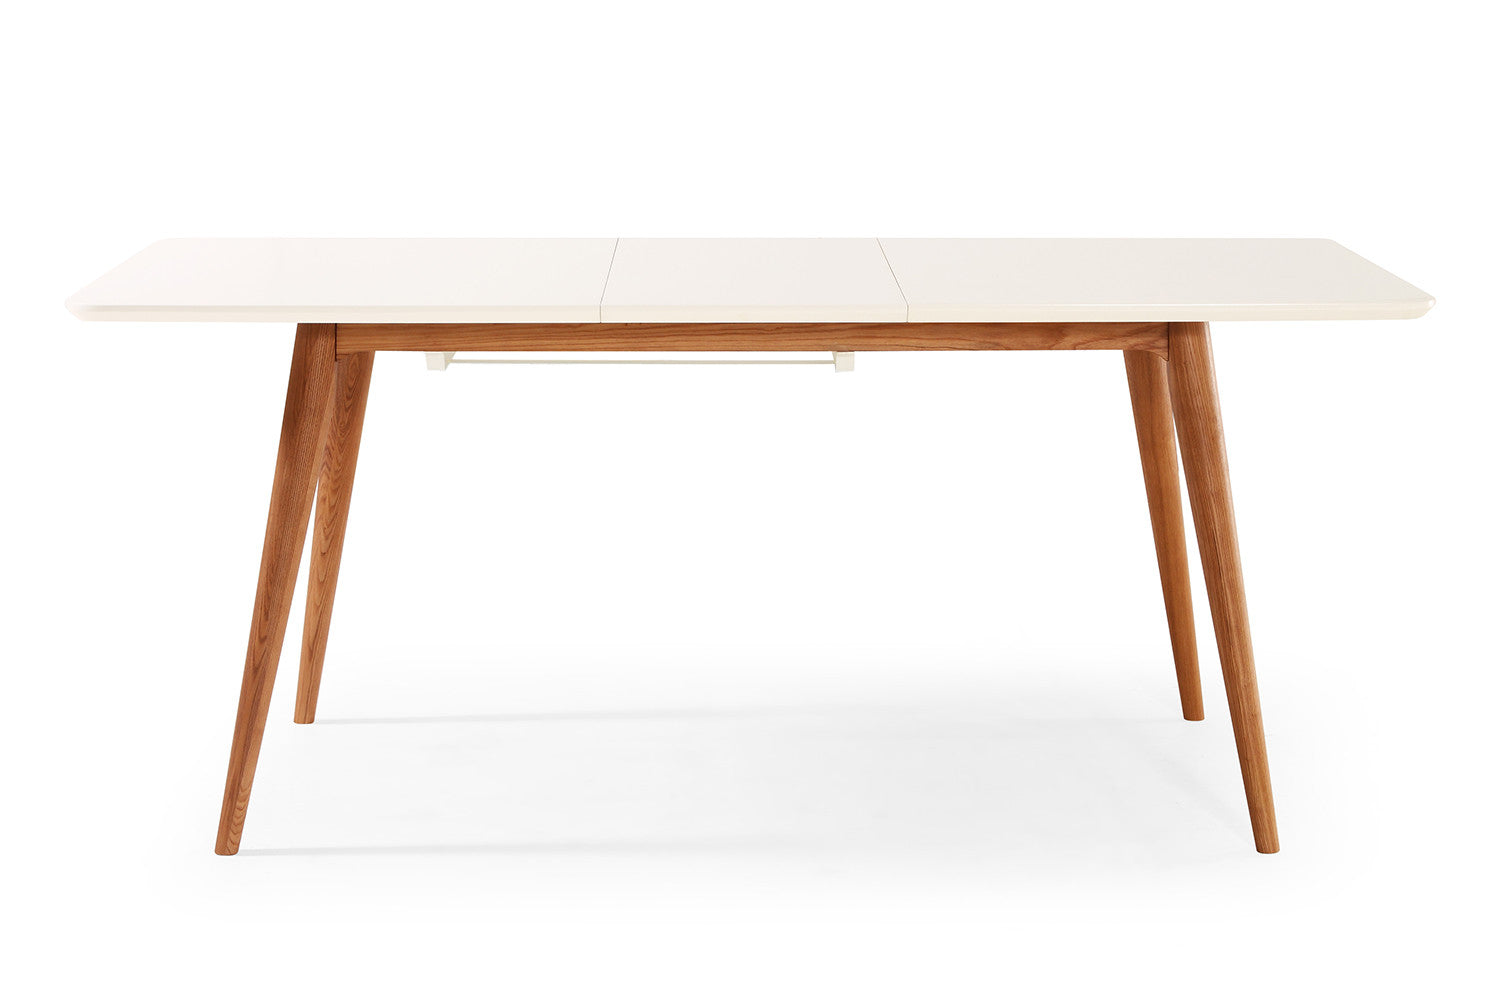 Table de salle manger extensible scandinave wyna dewarens for Table scandinave a rallonge